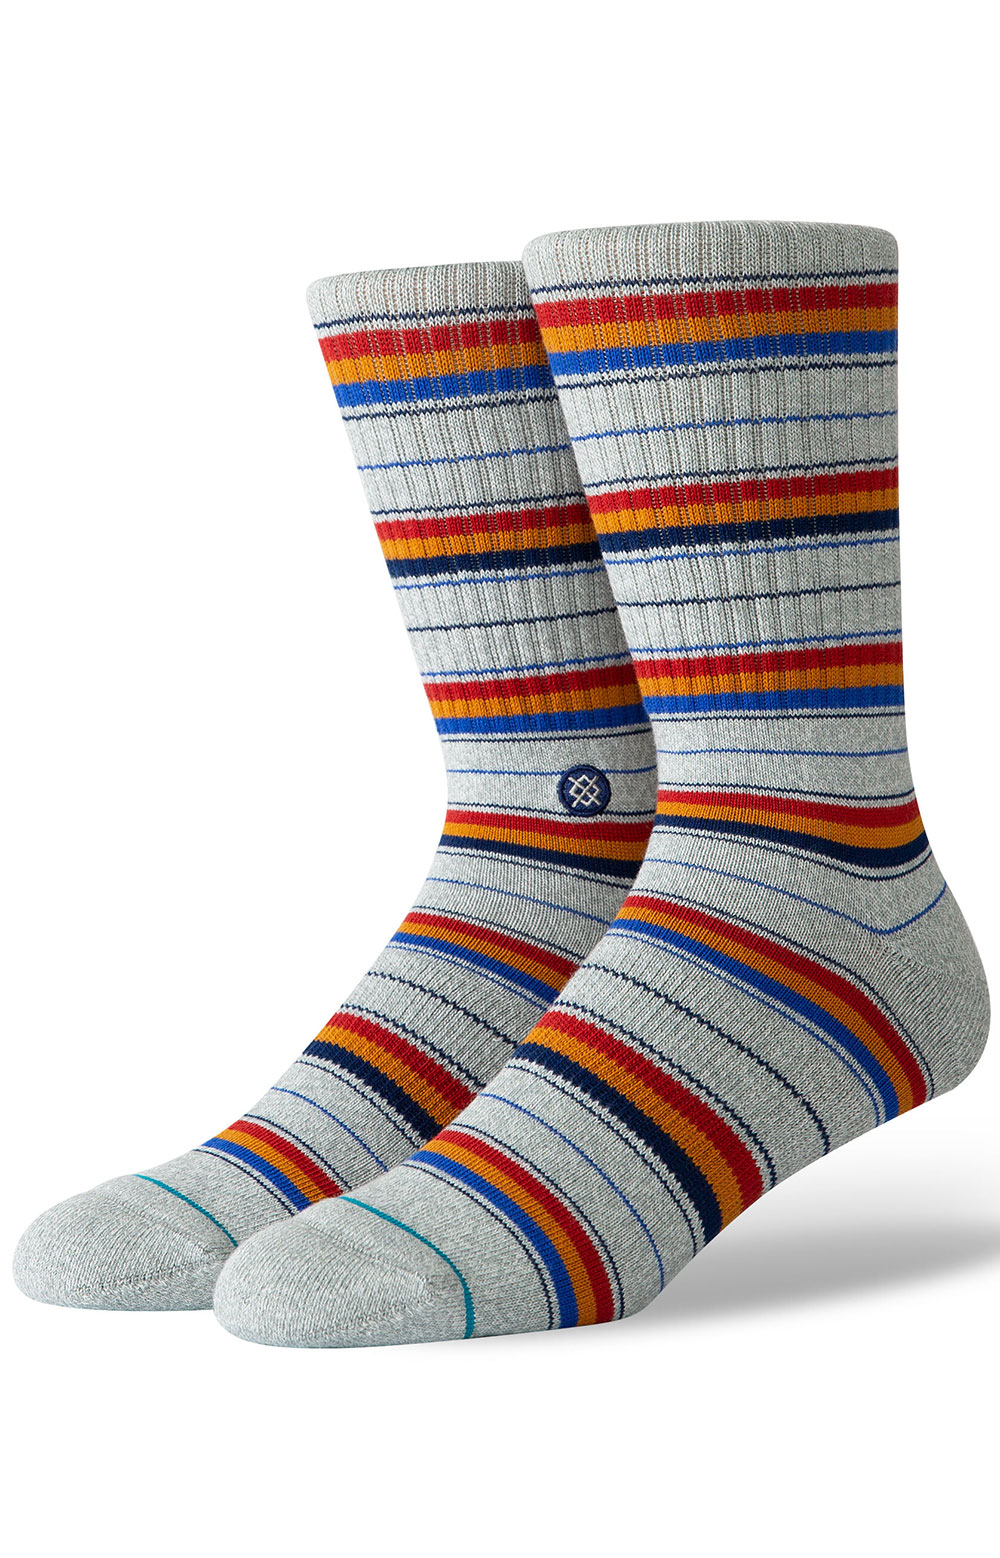 Franklin Socks